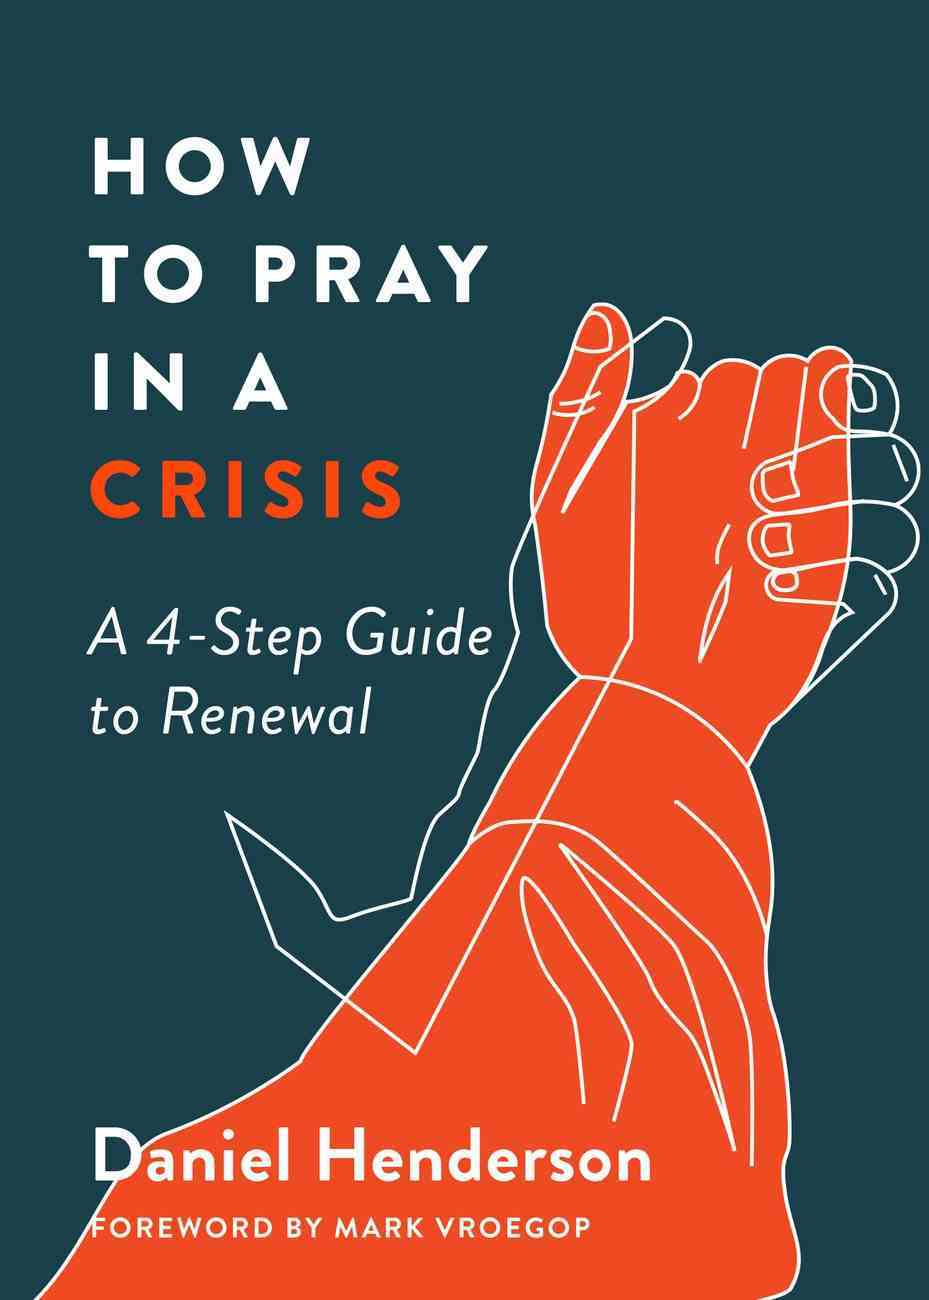 How to Pray in a Crisis: A 4-Step Guide to Renewal Paperback